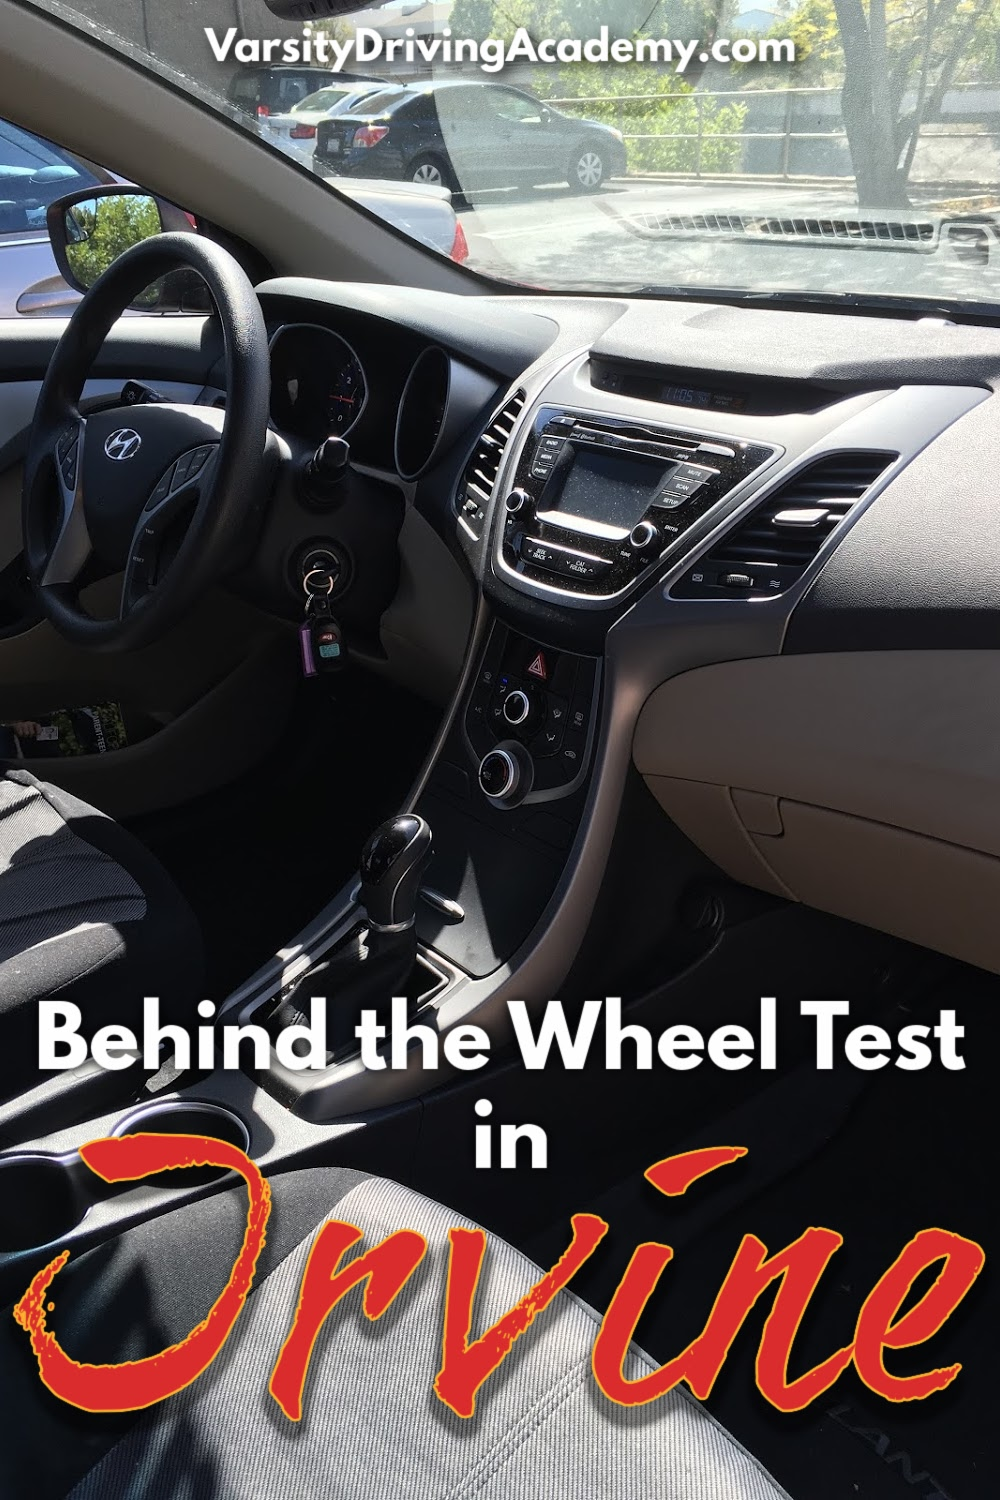 Students must complete a few steps before receiving a driver's license and the behind the wheel test in Irvine is the last step for Irvine students.